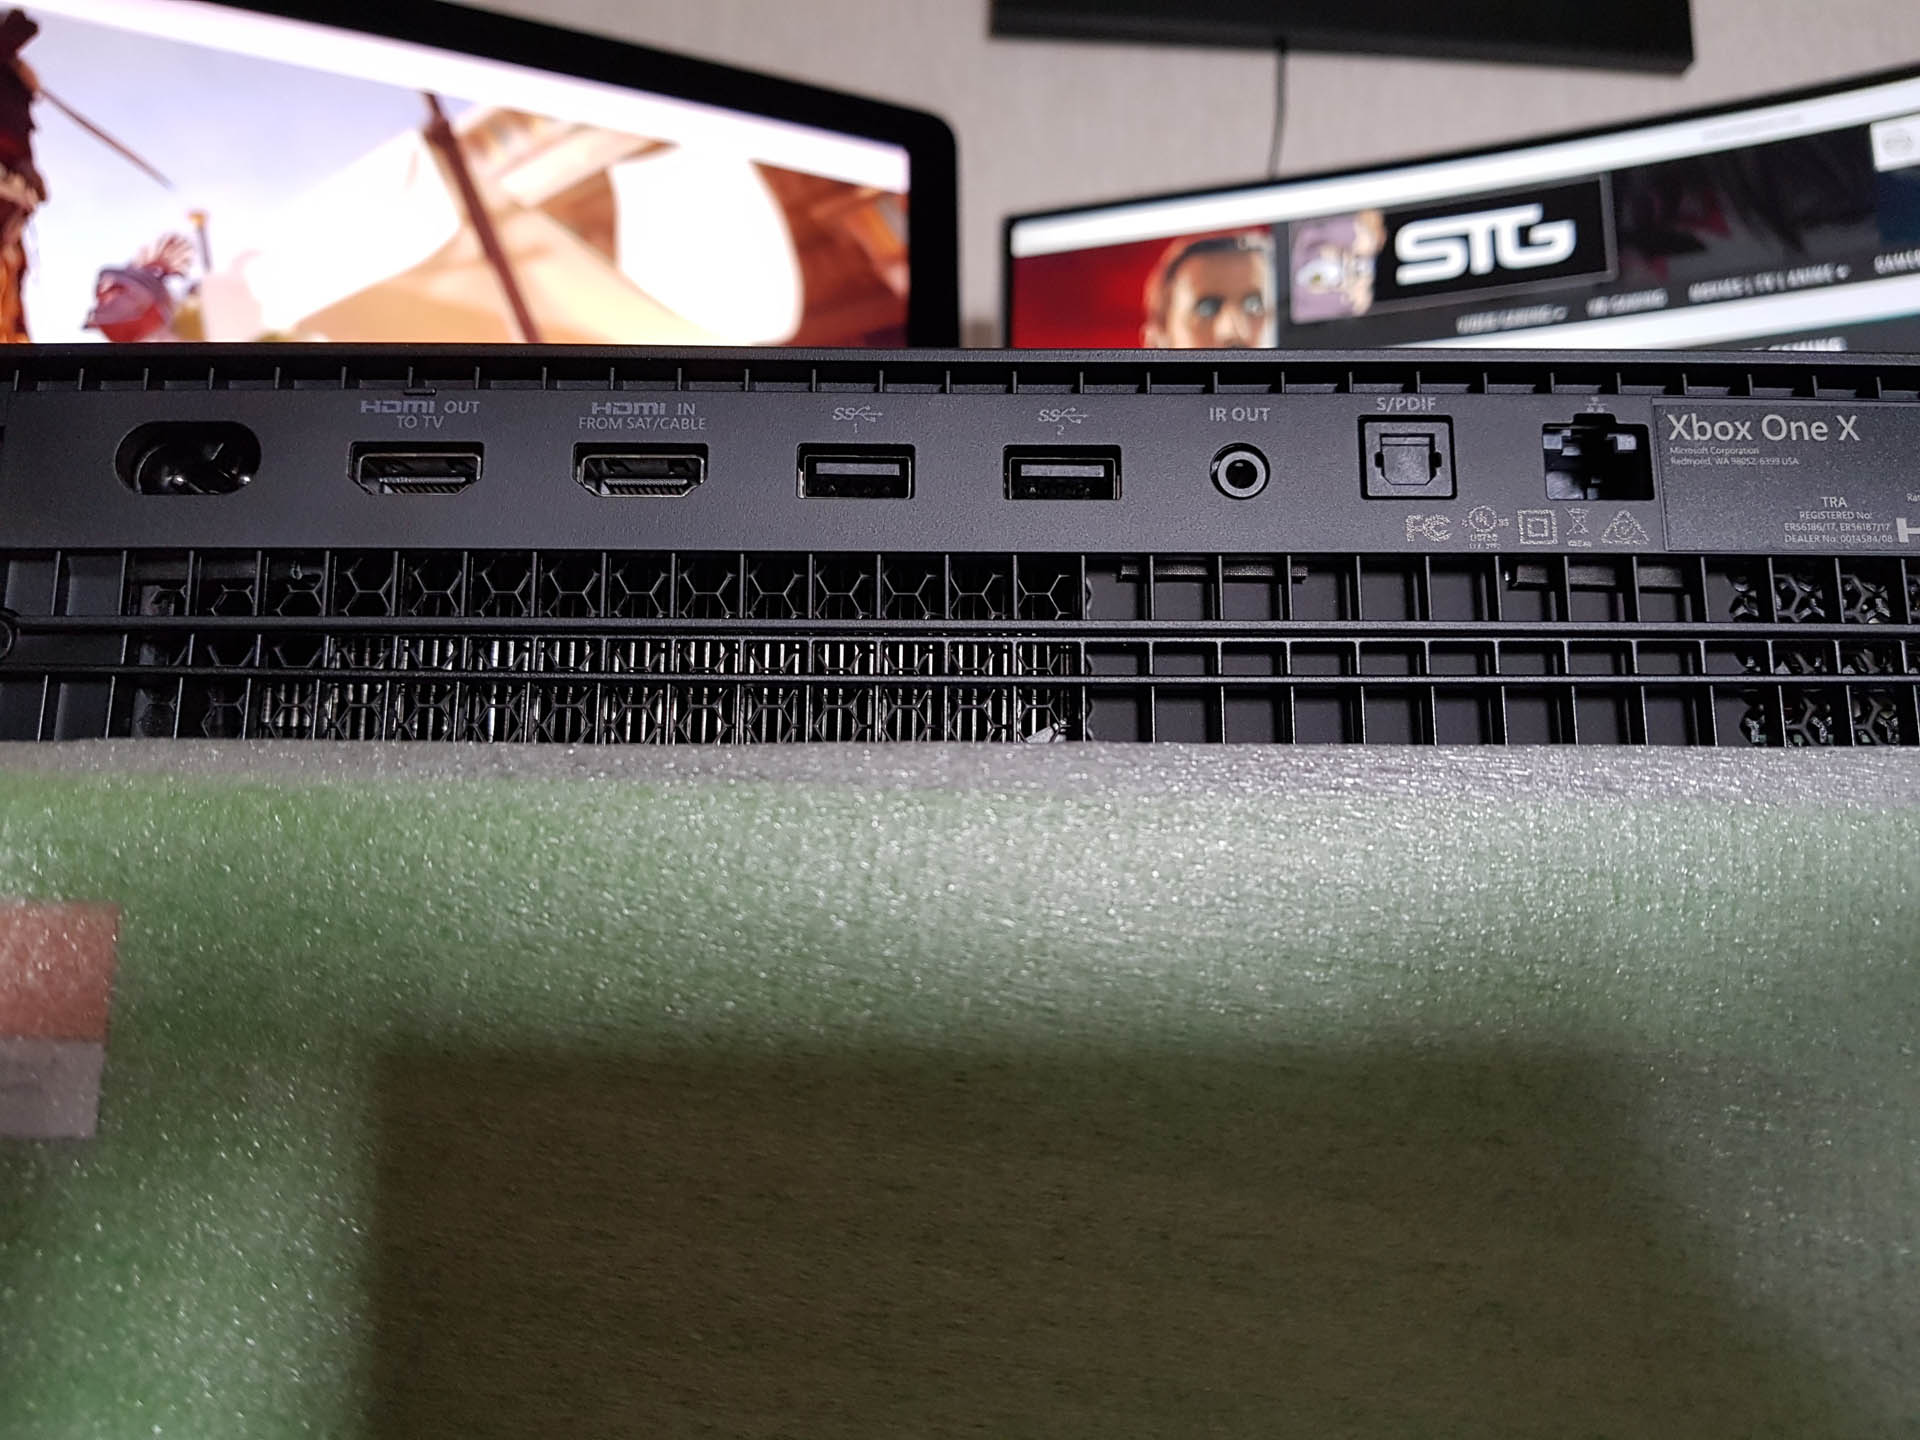 The Rear Of Console Sees A Few More Ports Than Xbox One Firstly You Have Two HDMI Input And Out USB Can Aslo Be Found